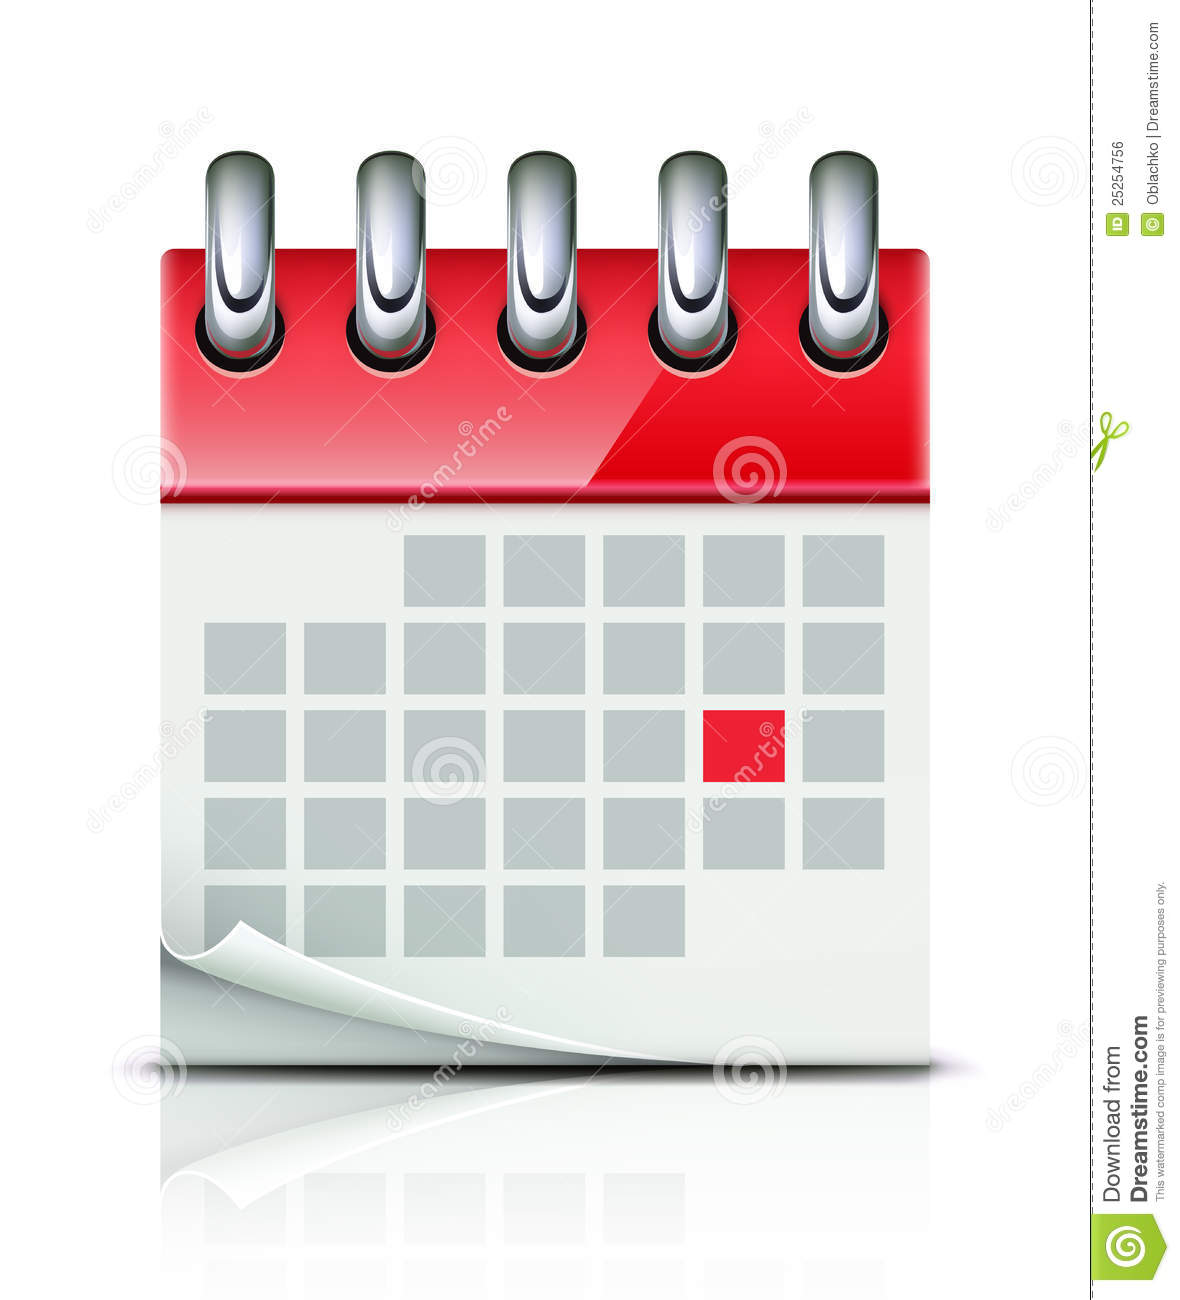 Calendar Illustration Vector : Calendar icon stock vector illustration of deadline